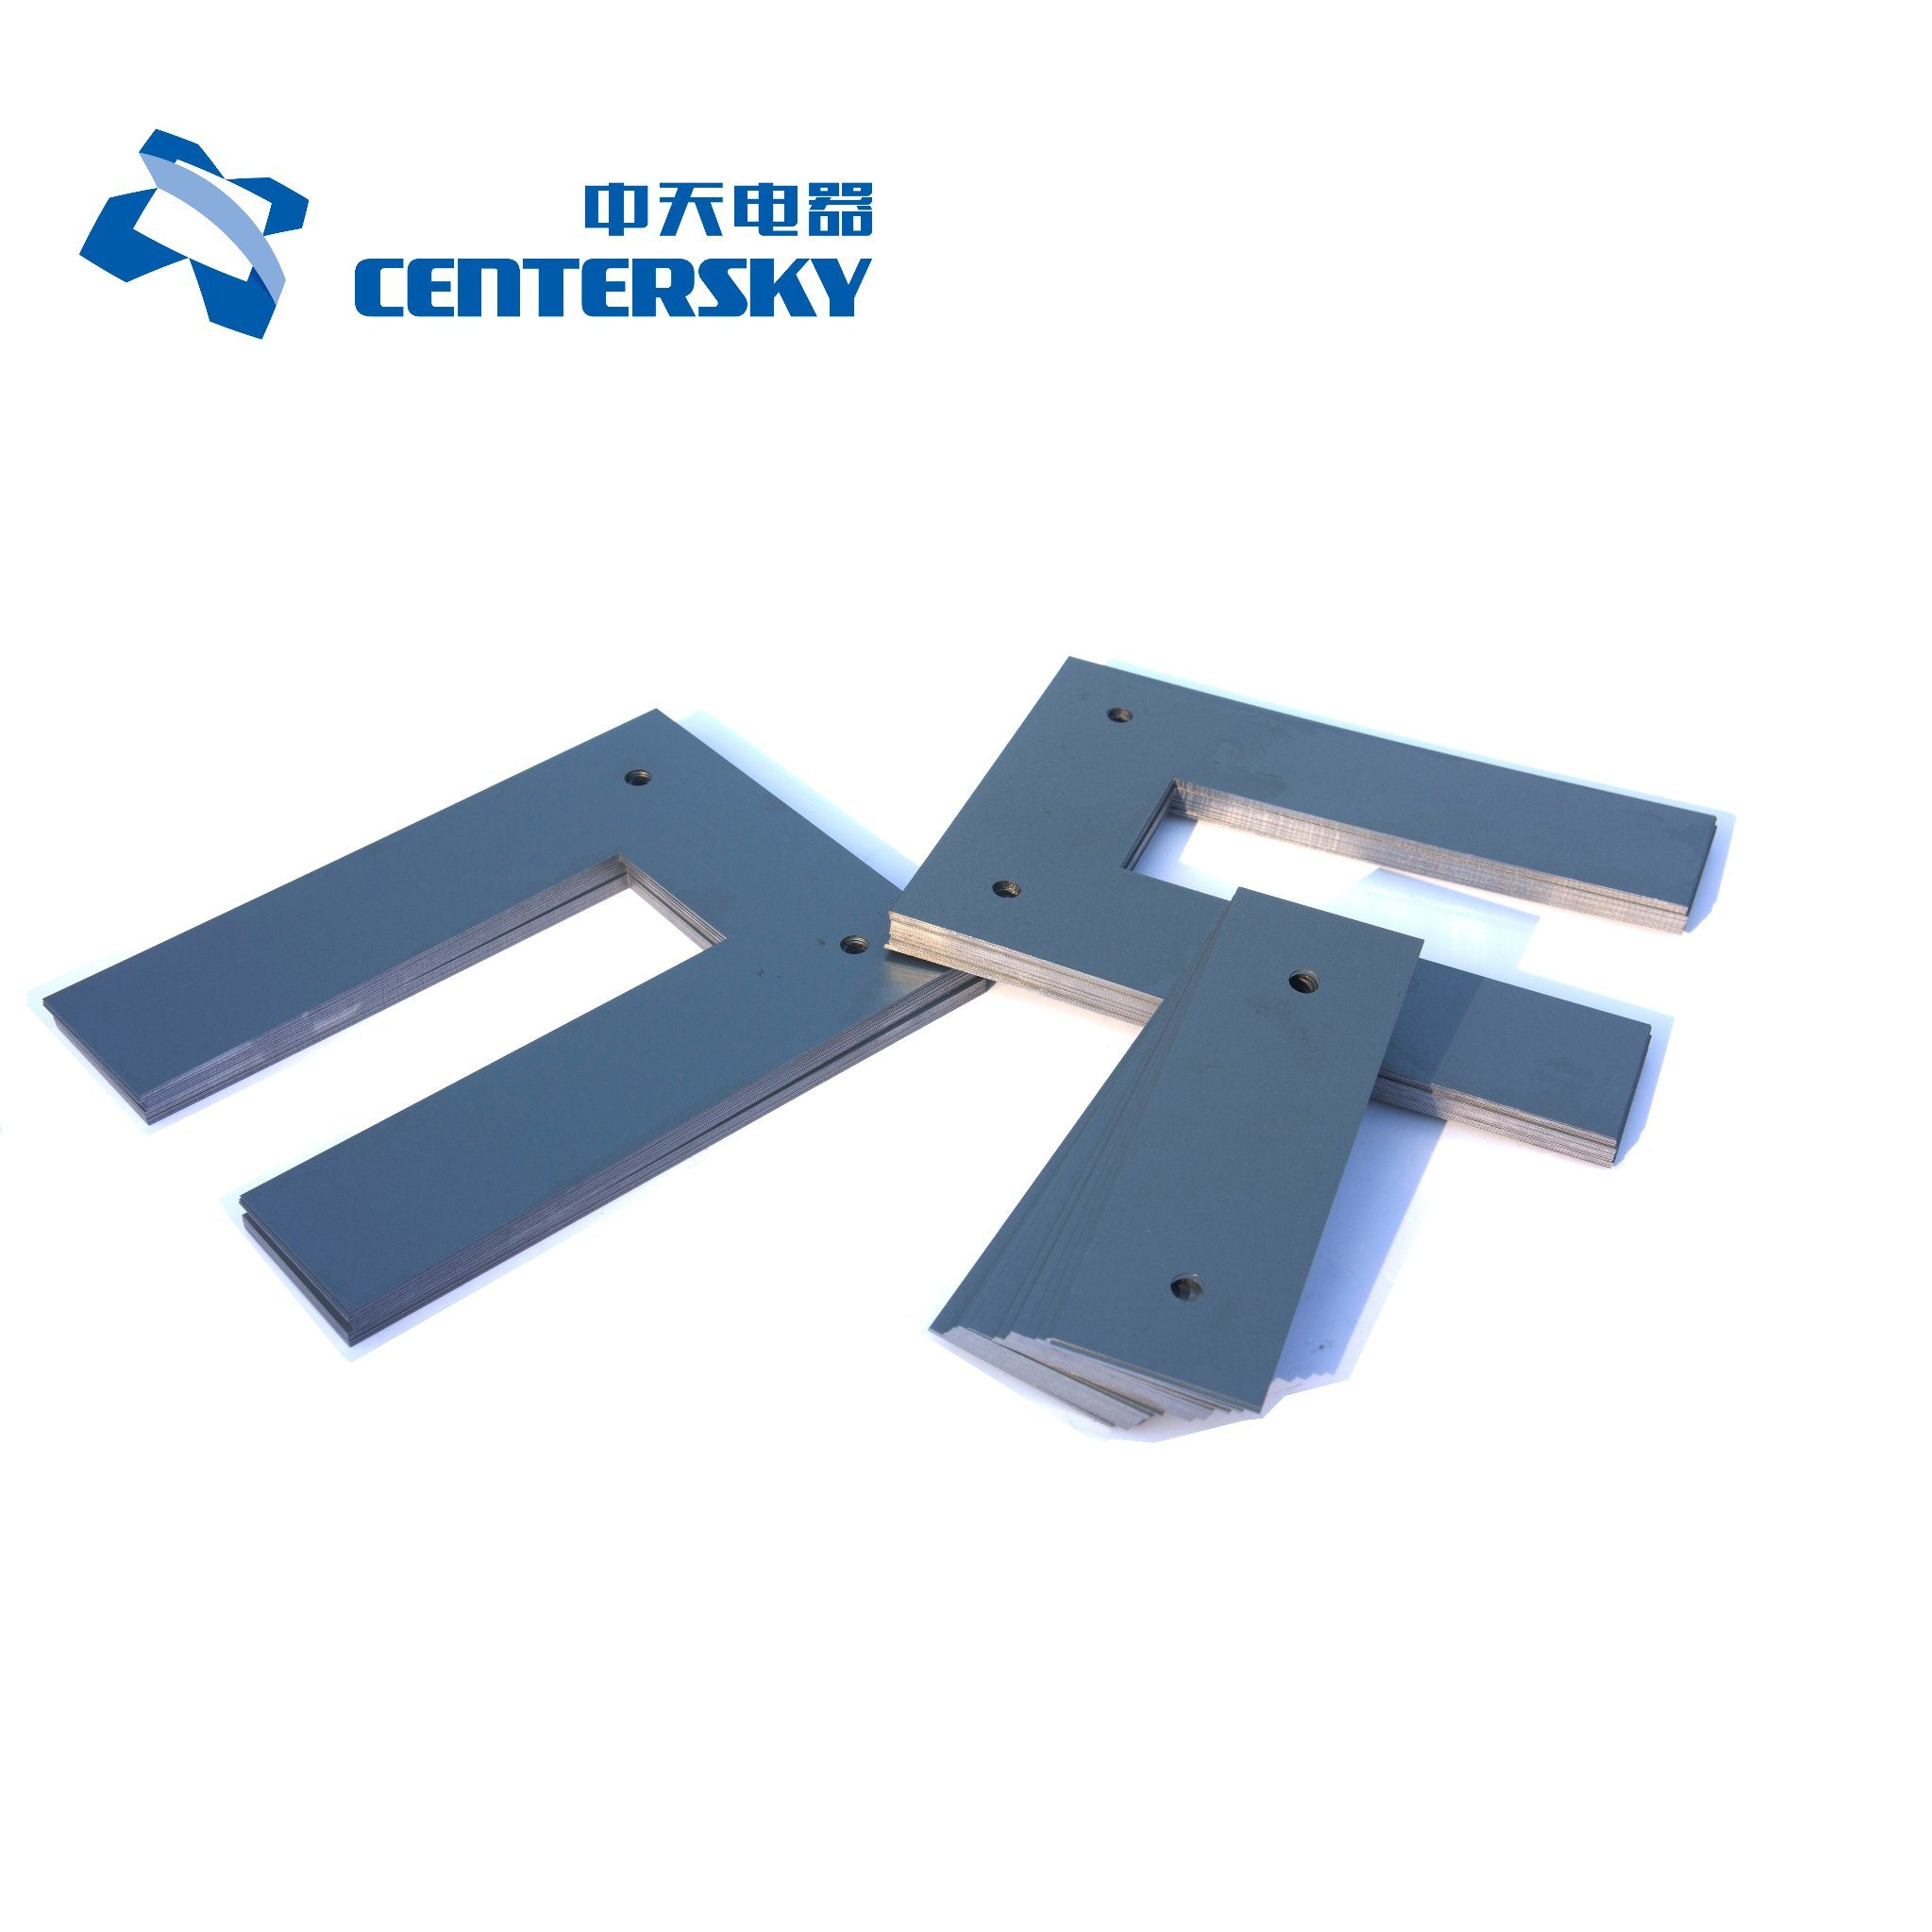 High Quality Silicon Ui Laminated Iron Core with Good Price